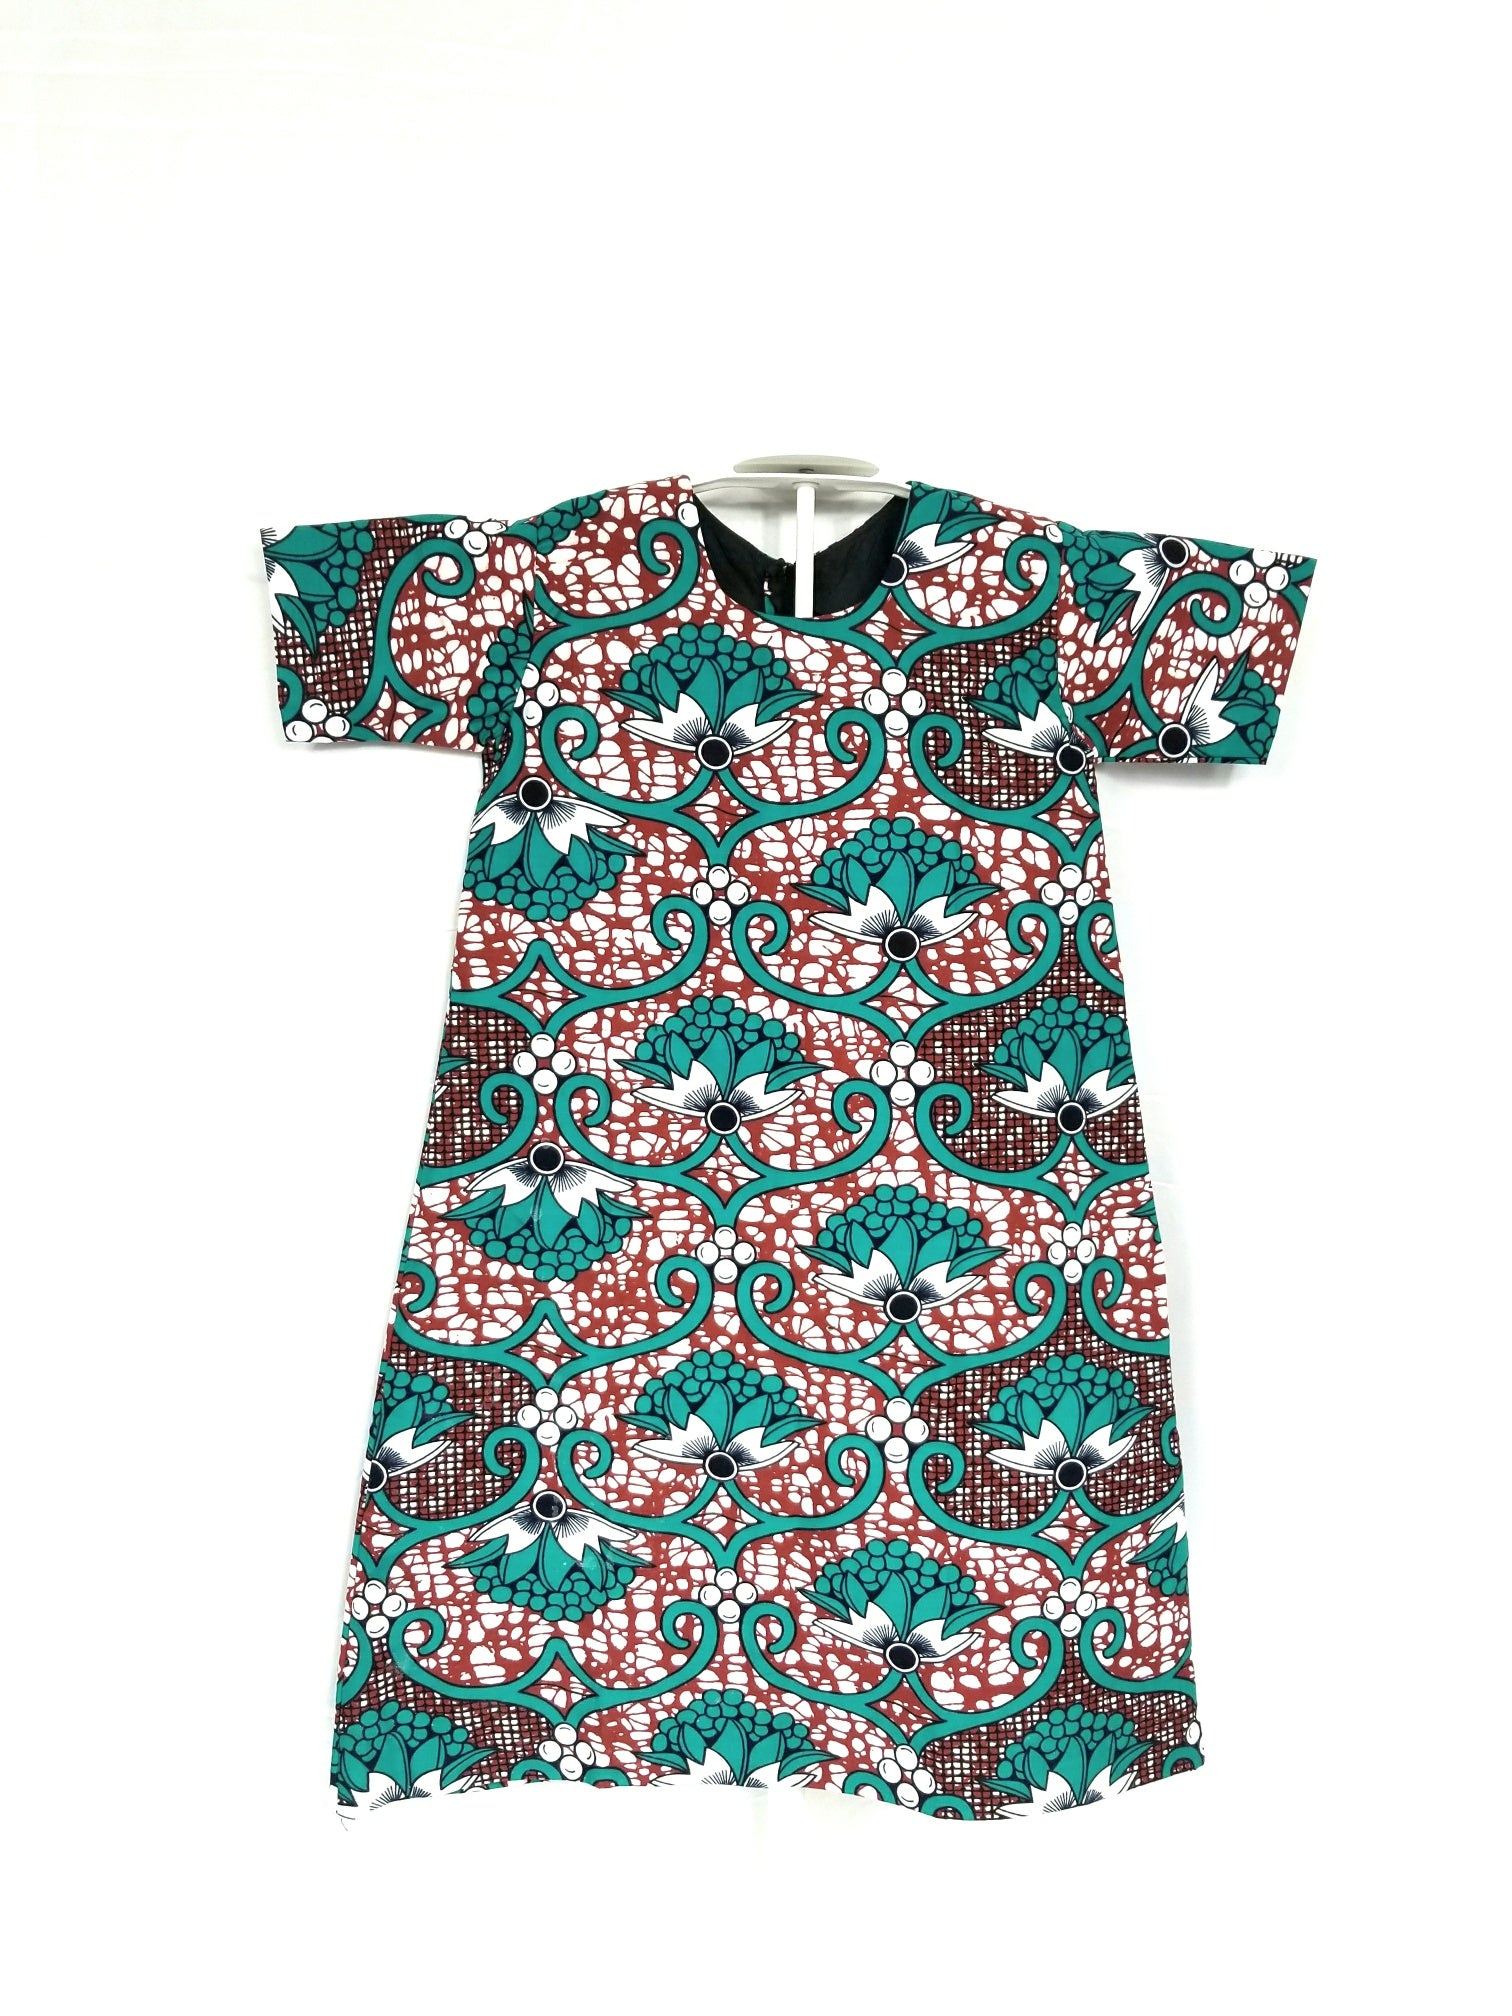 TANI ankara girl's shift dress with 3/4 sleeve (Green and brown vines)